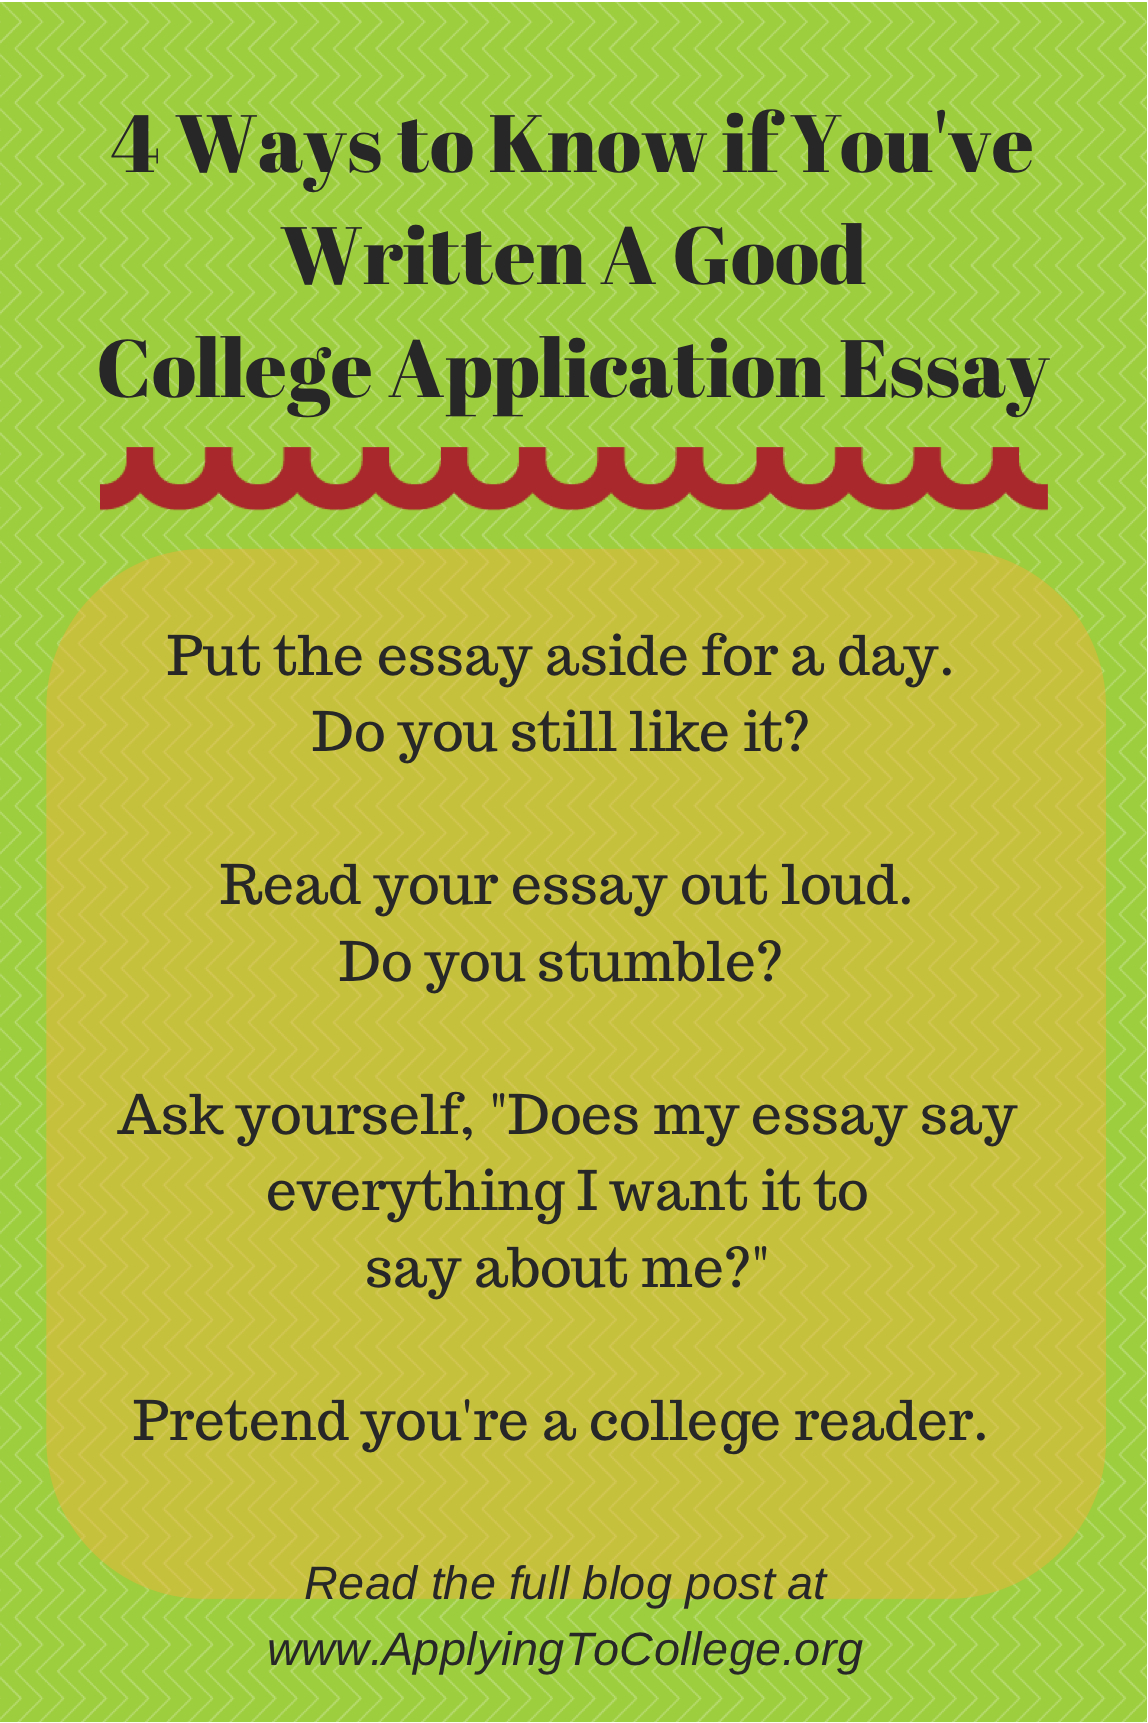 ... essay topics and many other good essay topics for college writing